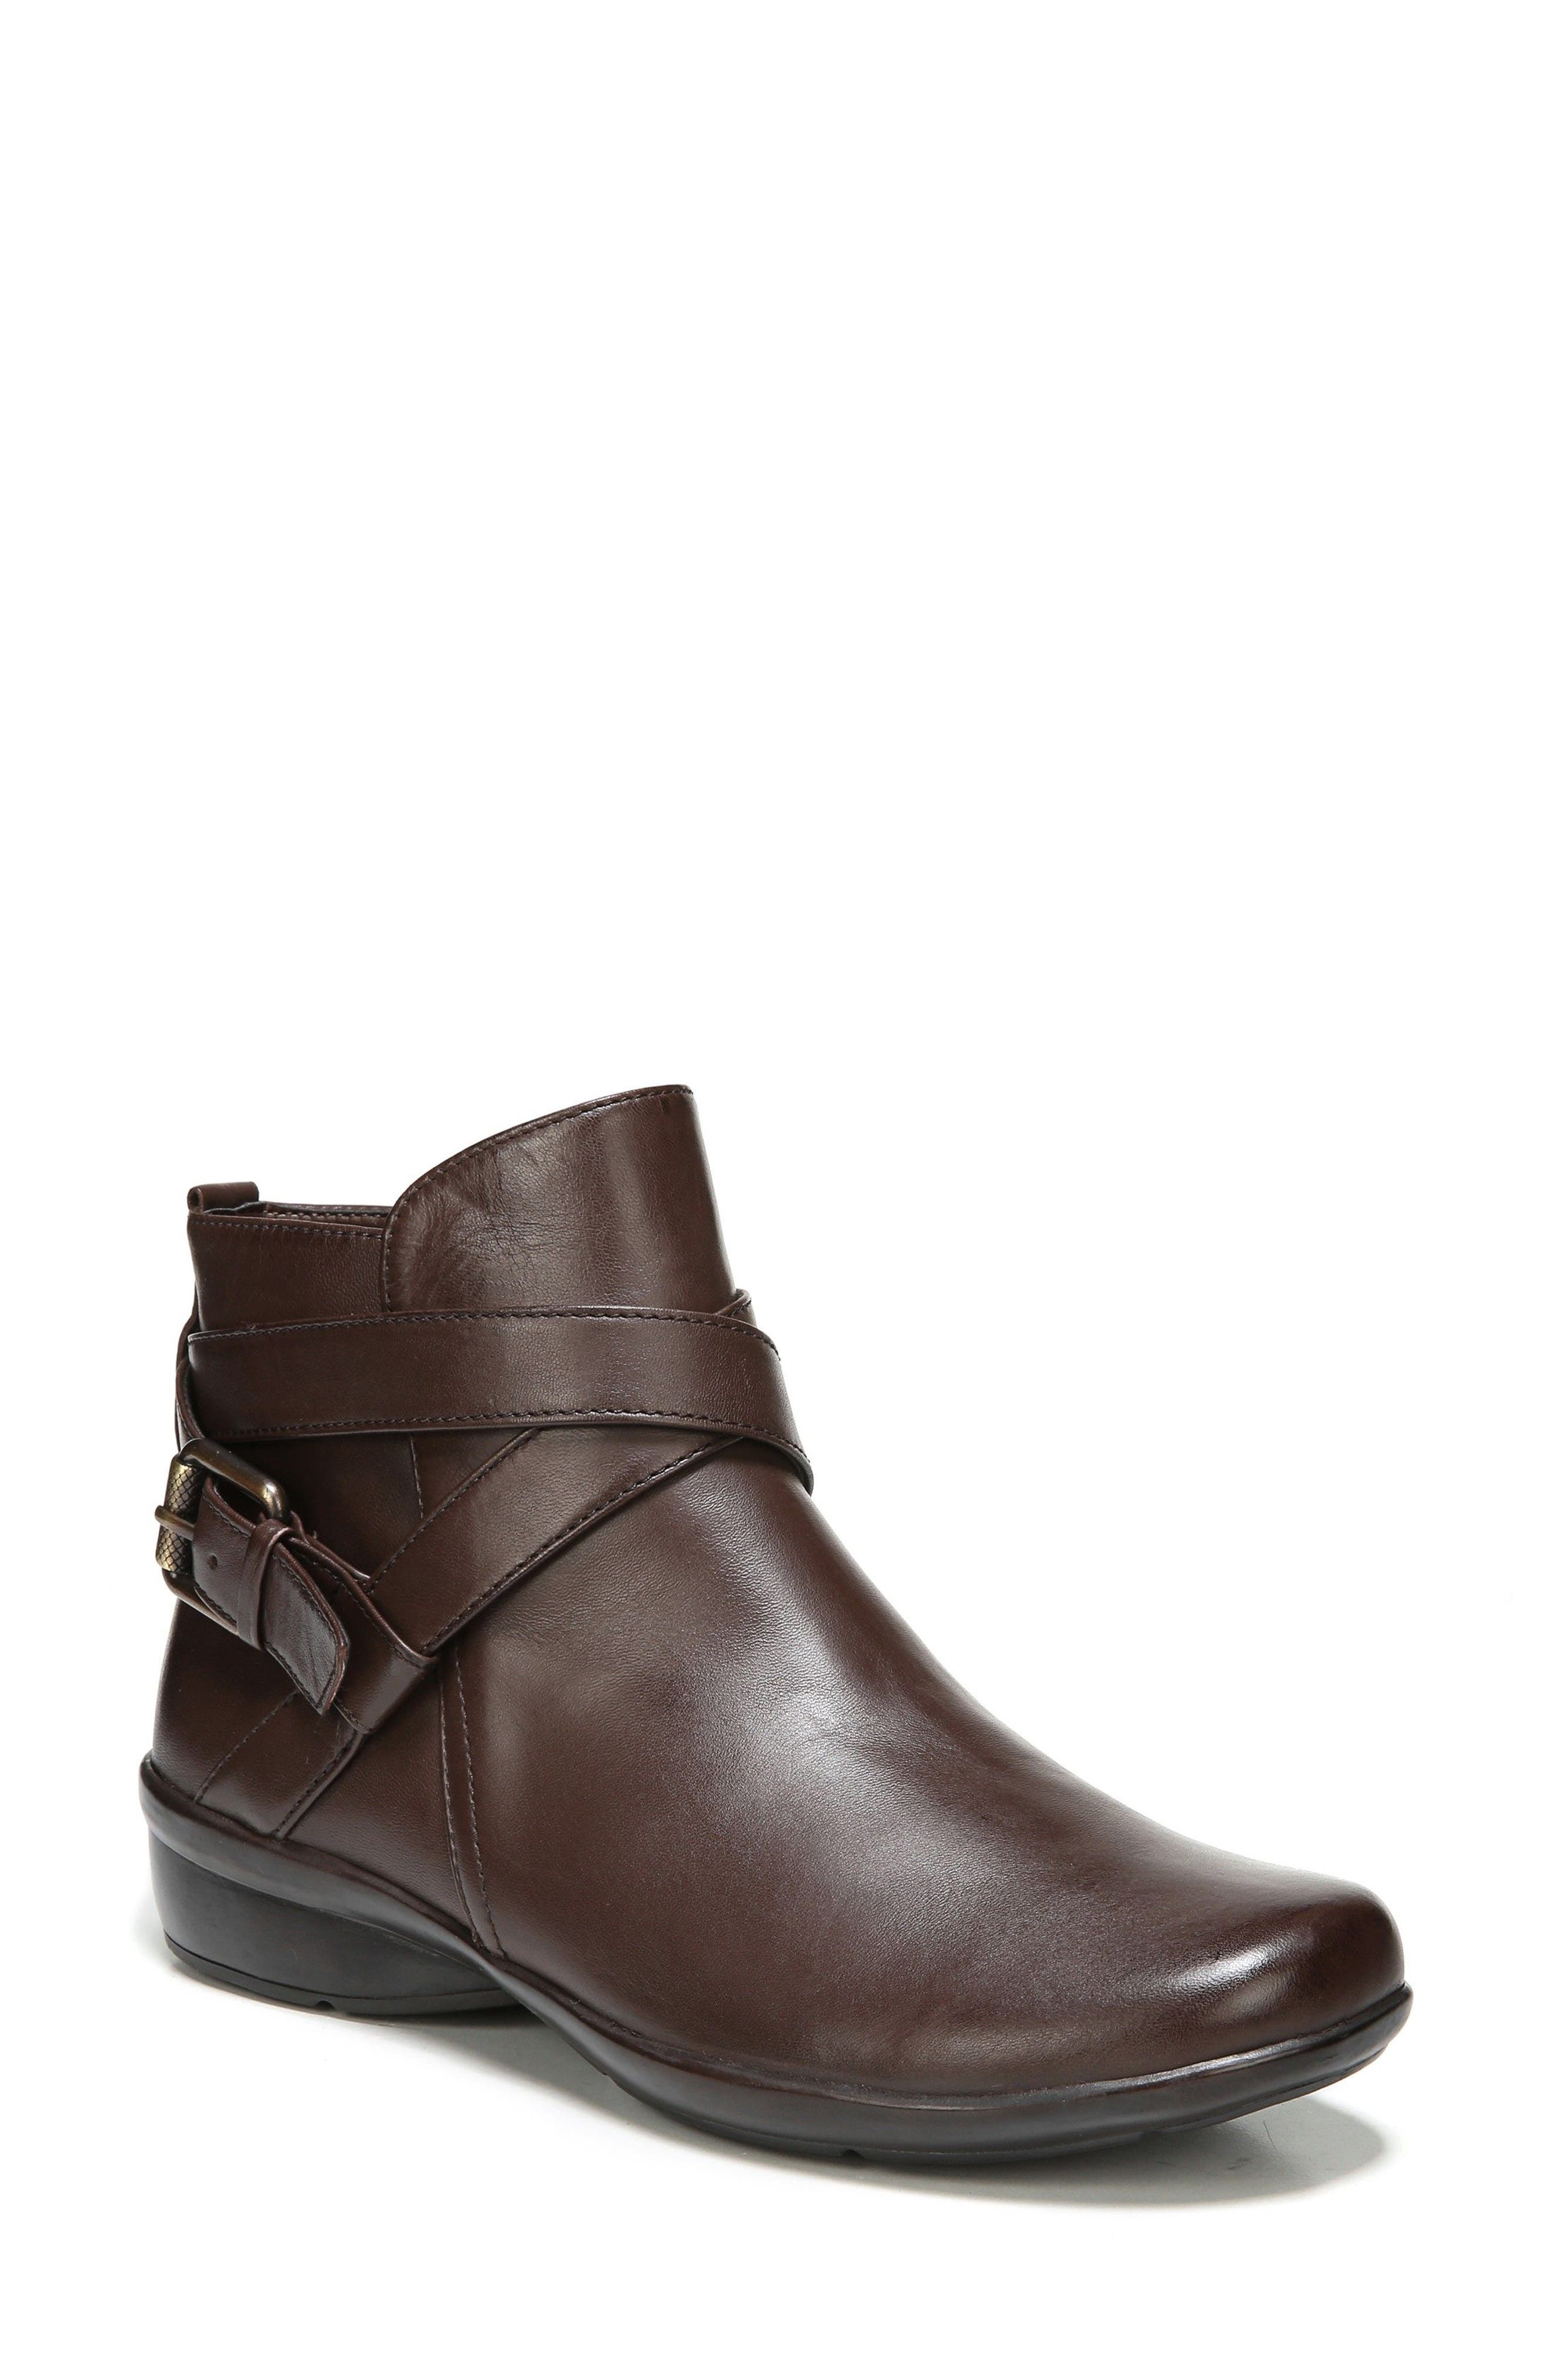 NATURALIZER Cassandra Buckle Strap Bootie, Main, color, BRIDAL BROWN LEATHER